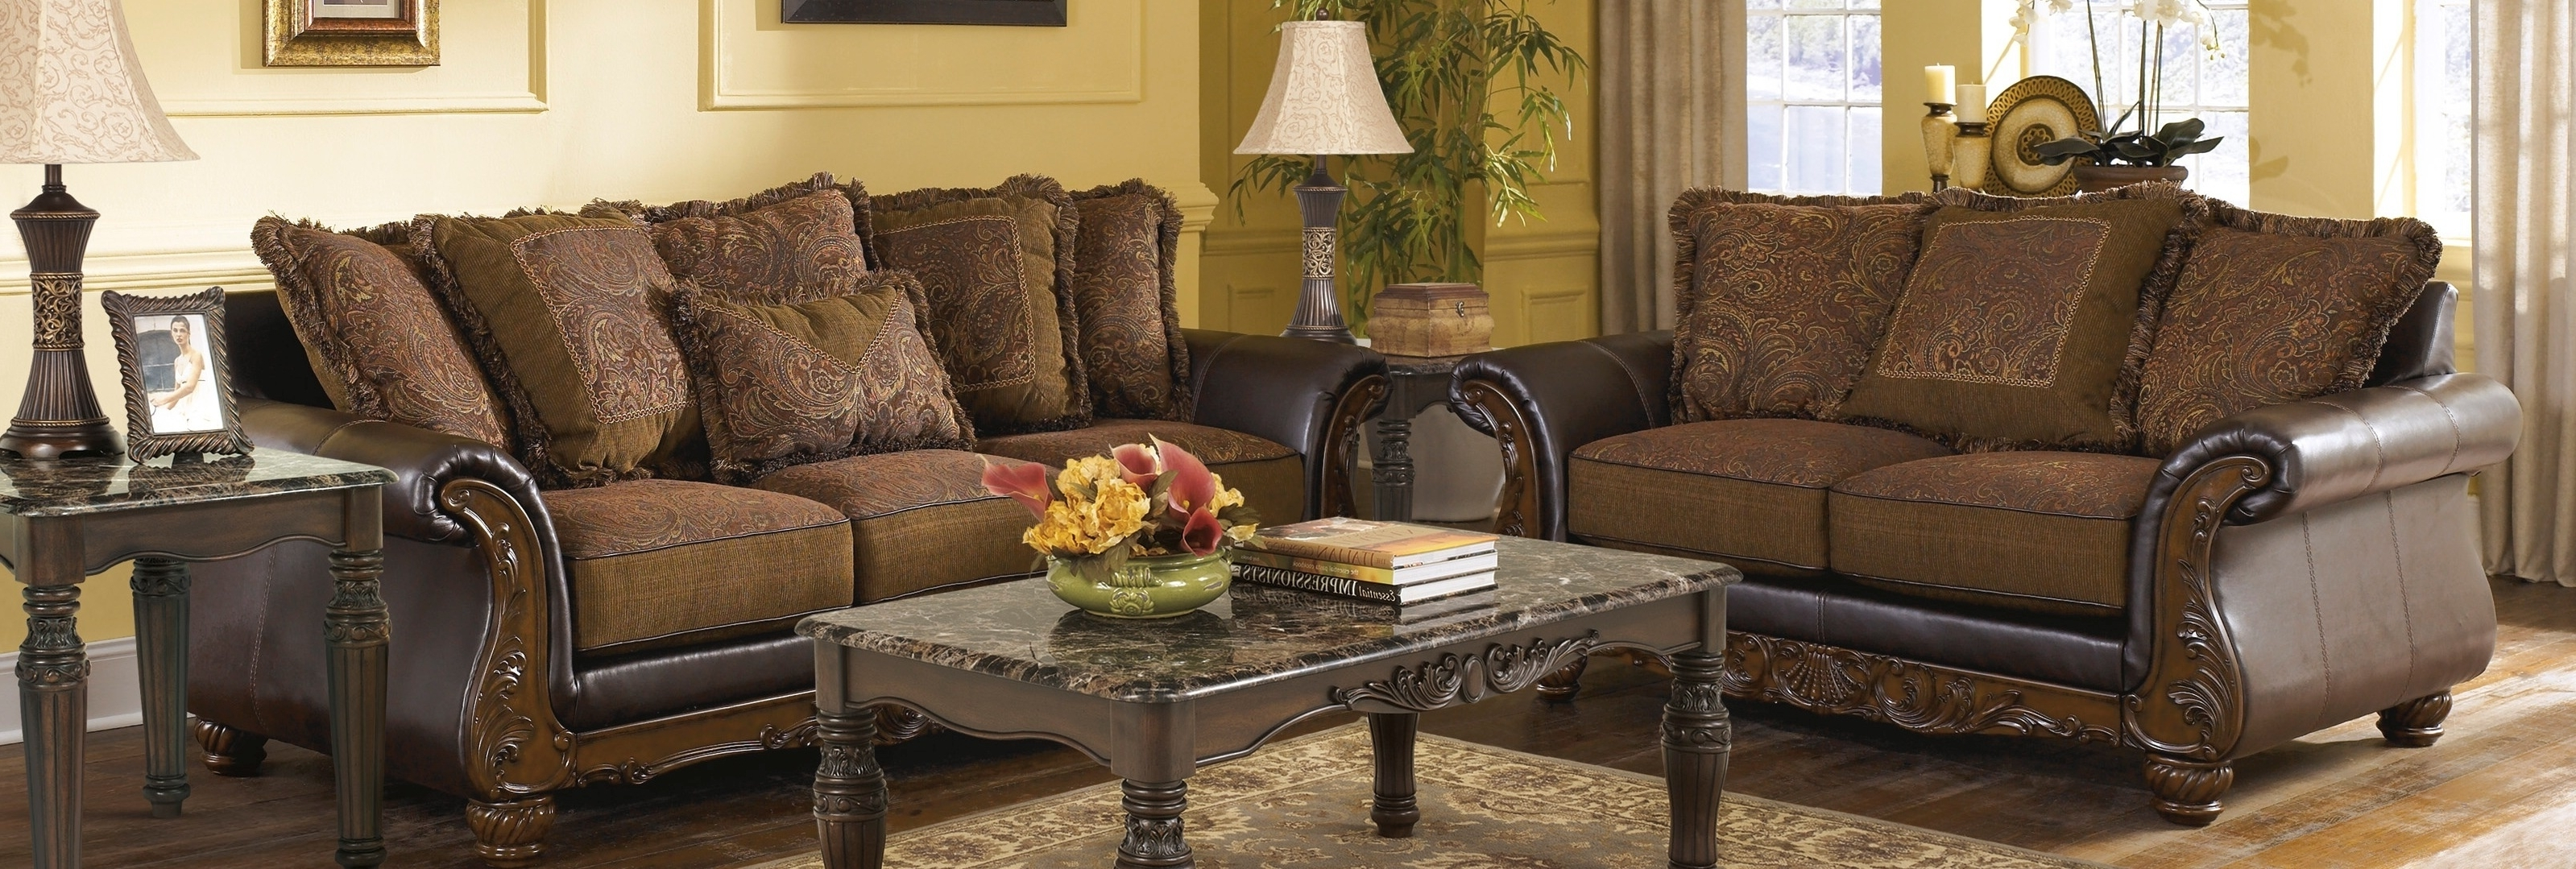 Trendy Sectional Sofas At Aarons With Regard To Amazing Idea Aarons Living Room Furniture Ideas Brown Adorable (View 18 of 20)